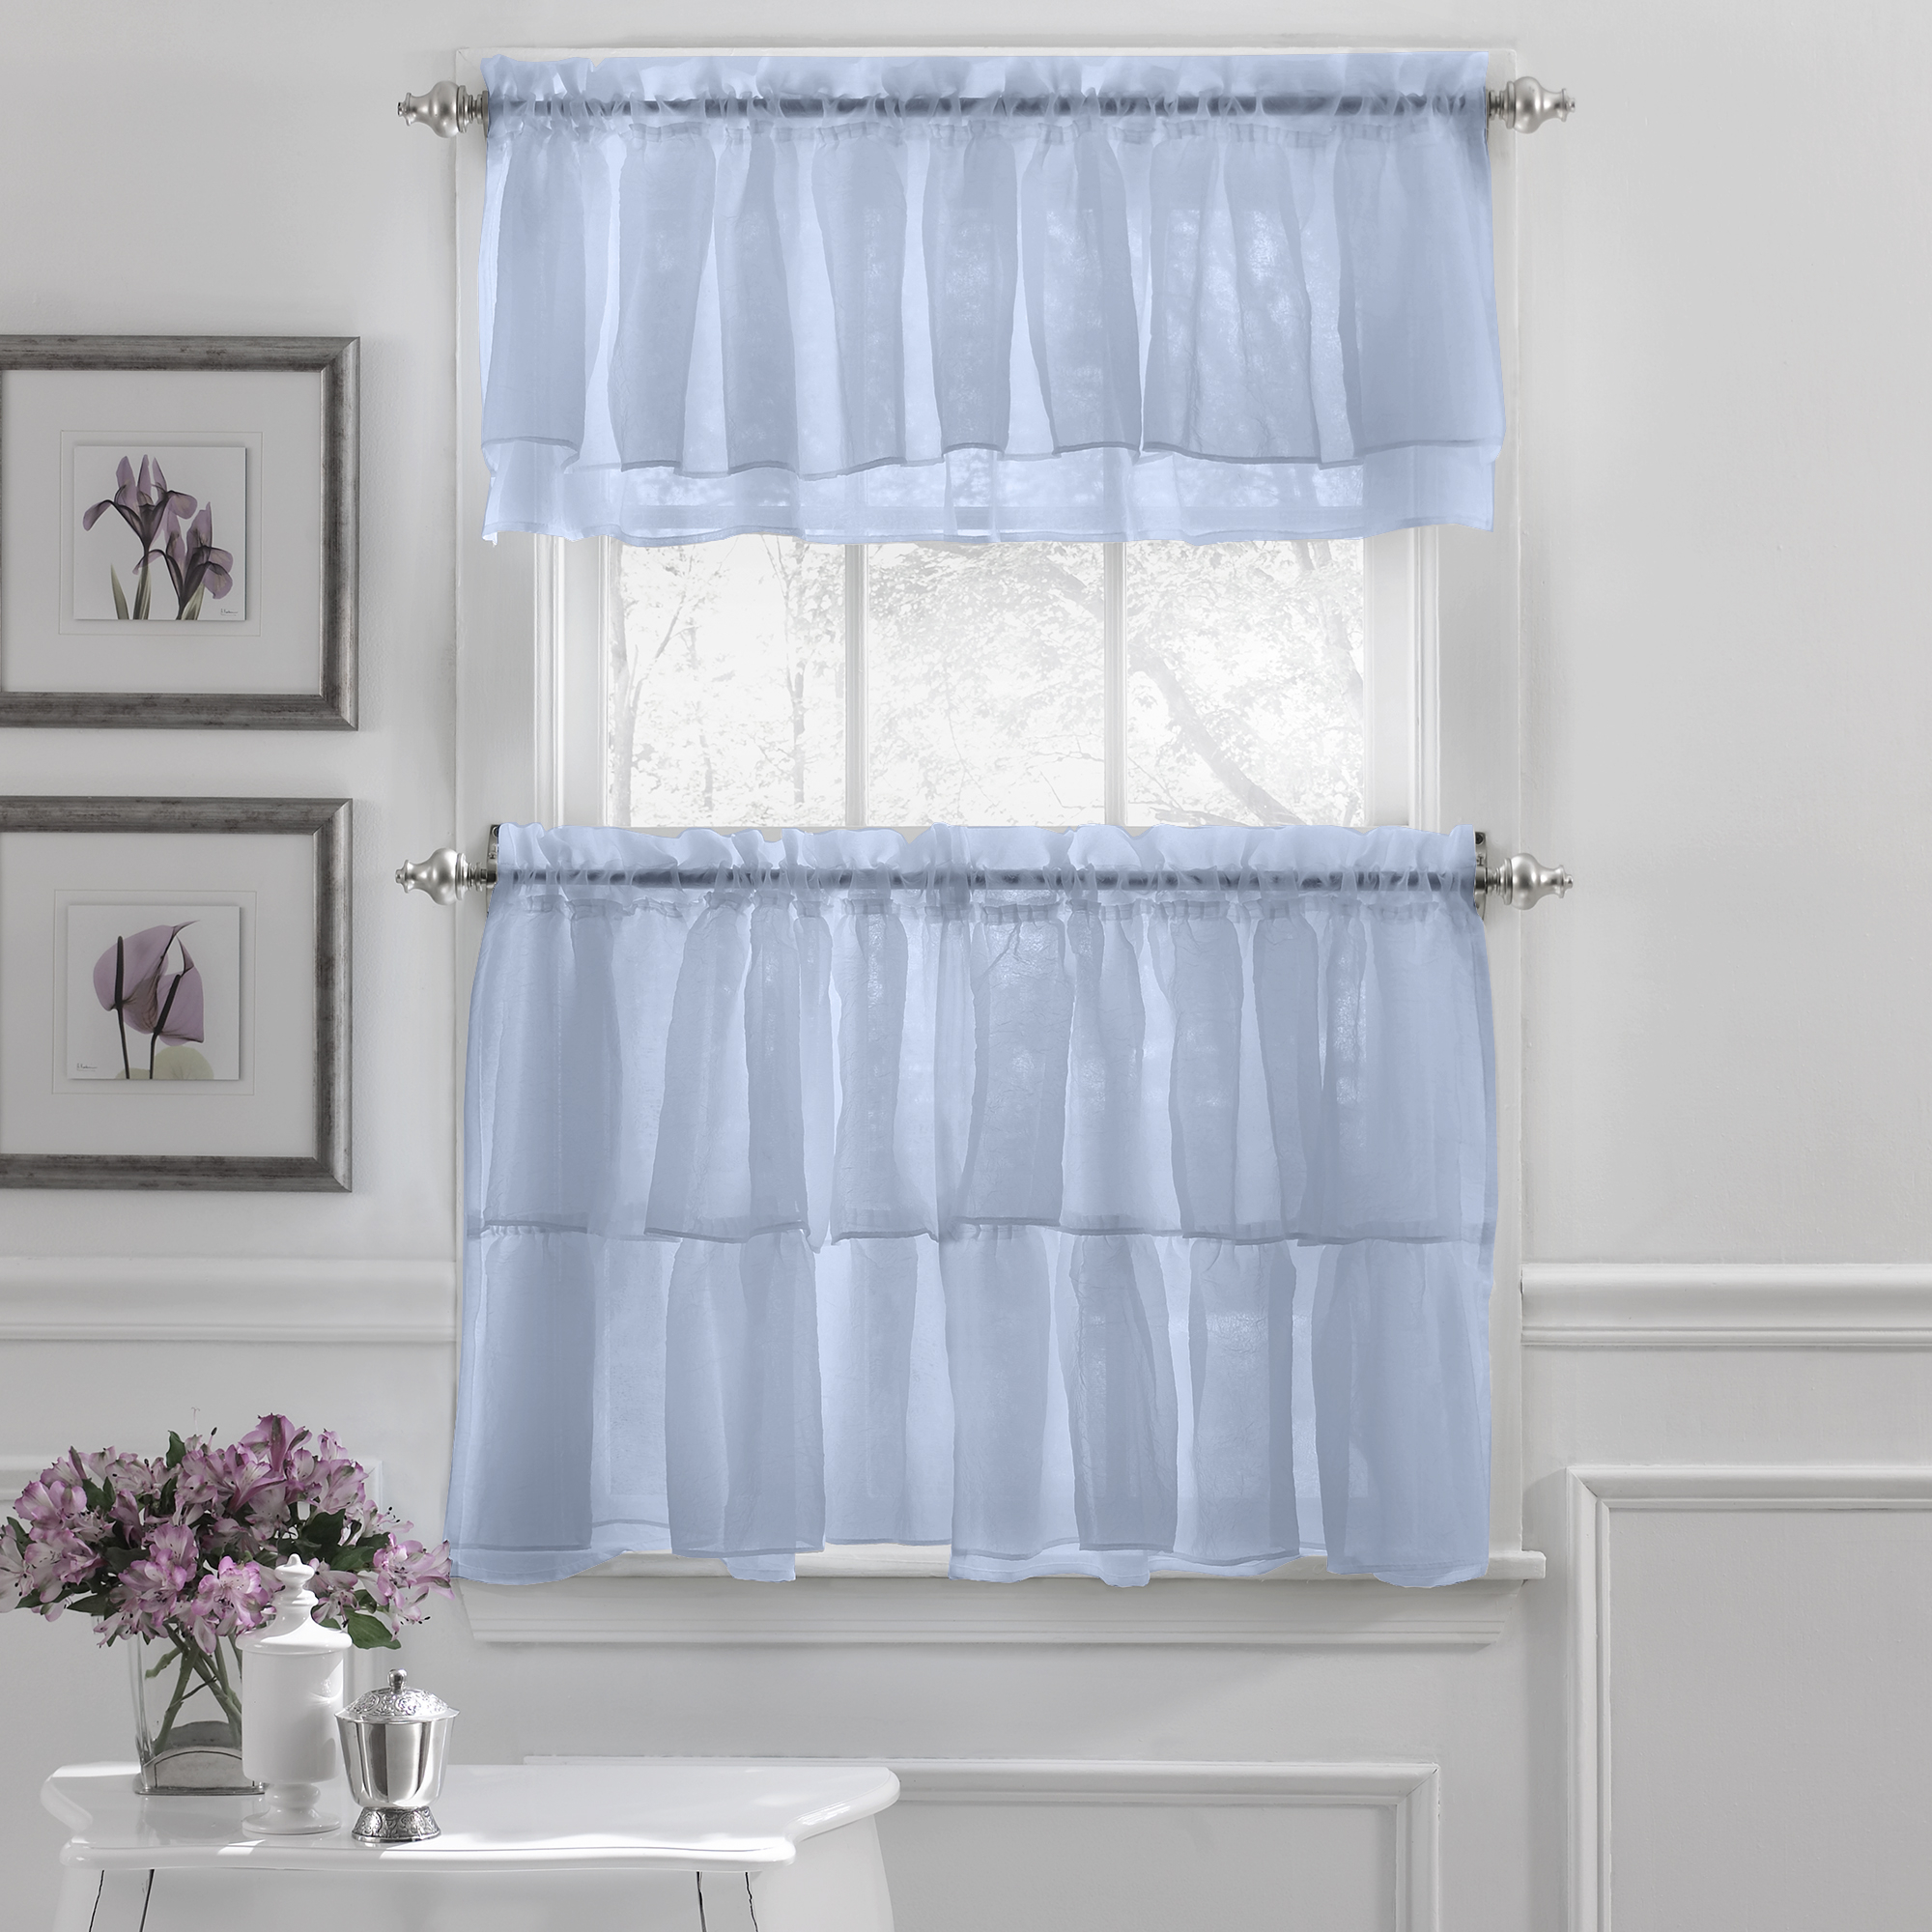 Details About Gypsy Crushed Voile Ruffle Kitchen Window Curtain Tiers Or Valance Blue With Bermuda Ruffle Kitchen Curtain Tier Sets (View 8 of 20)